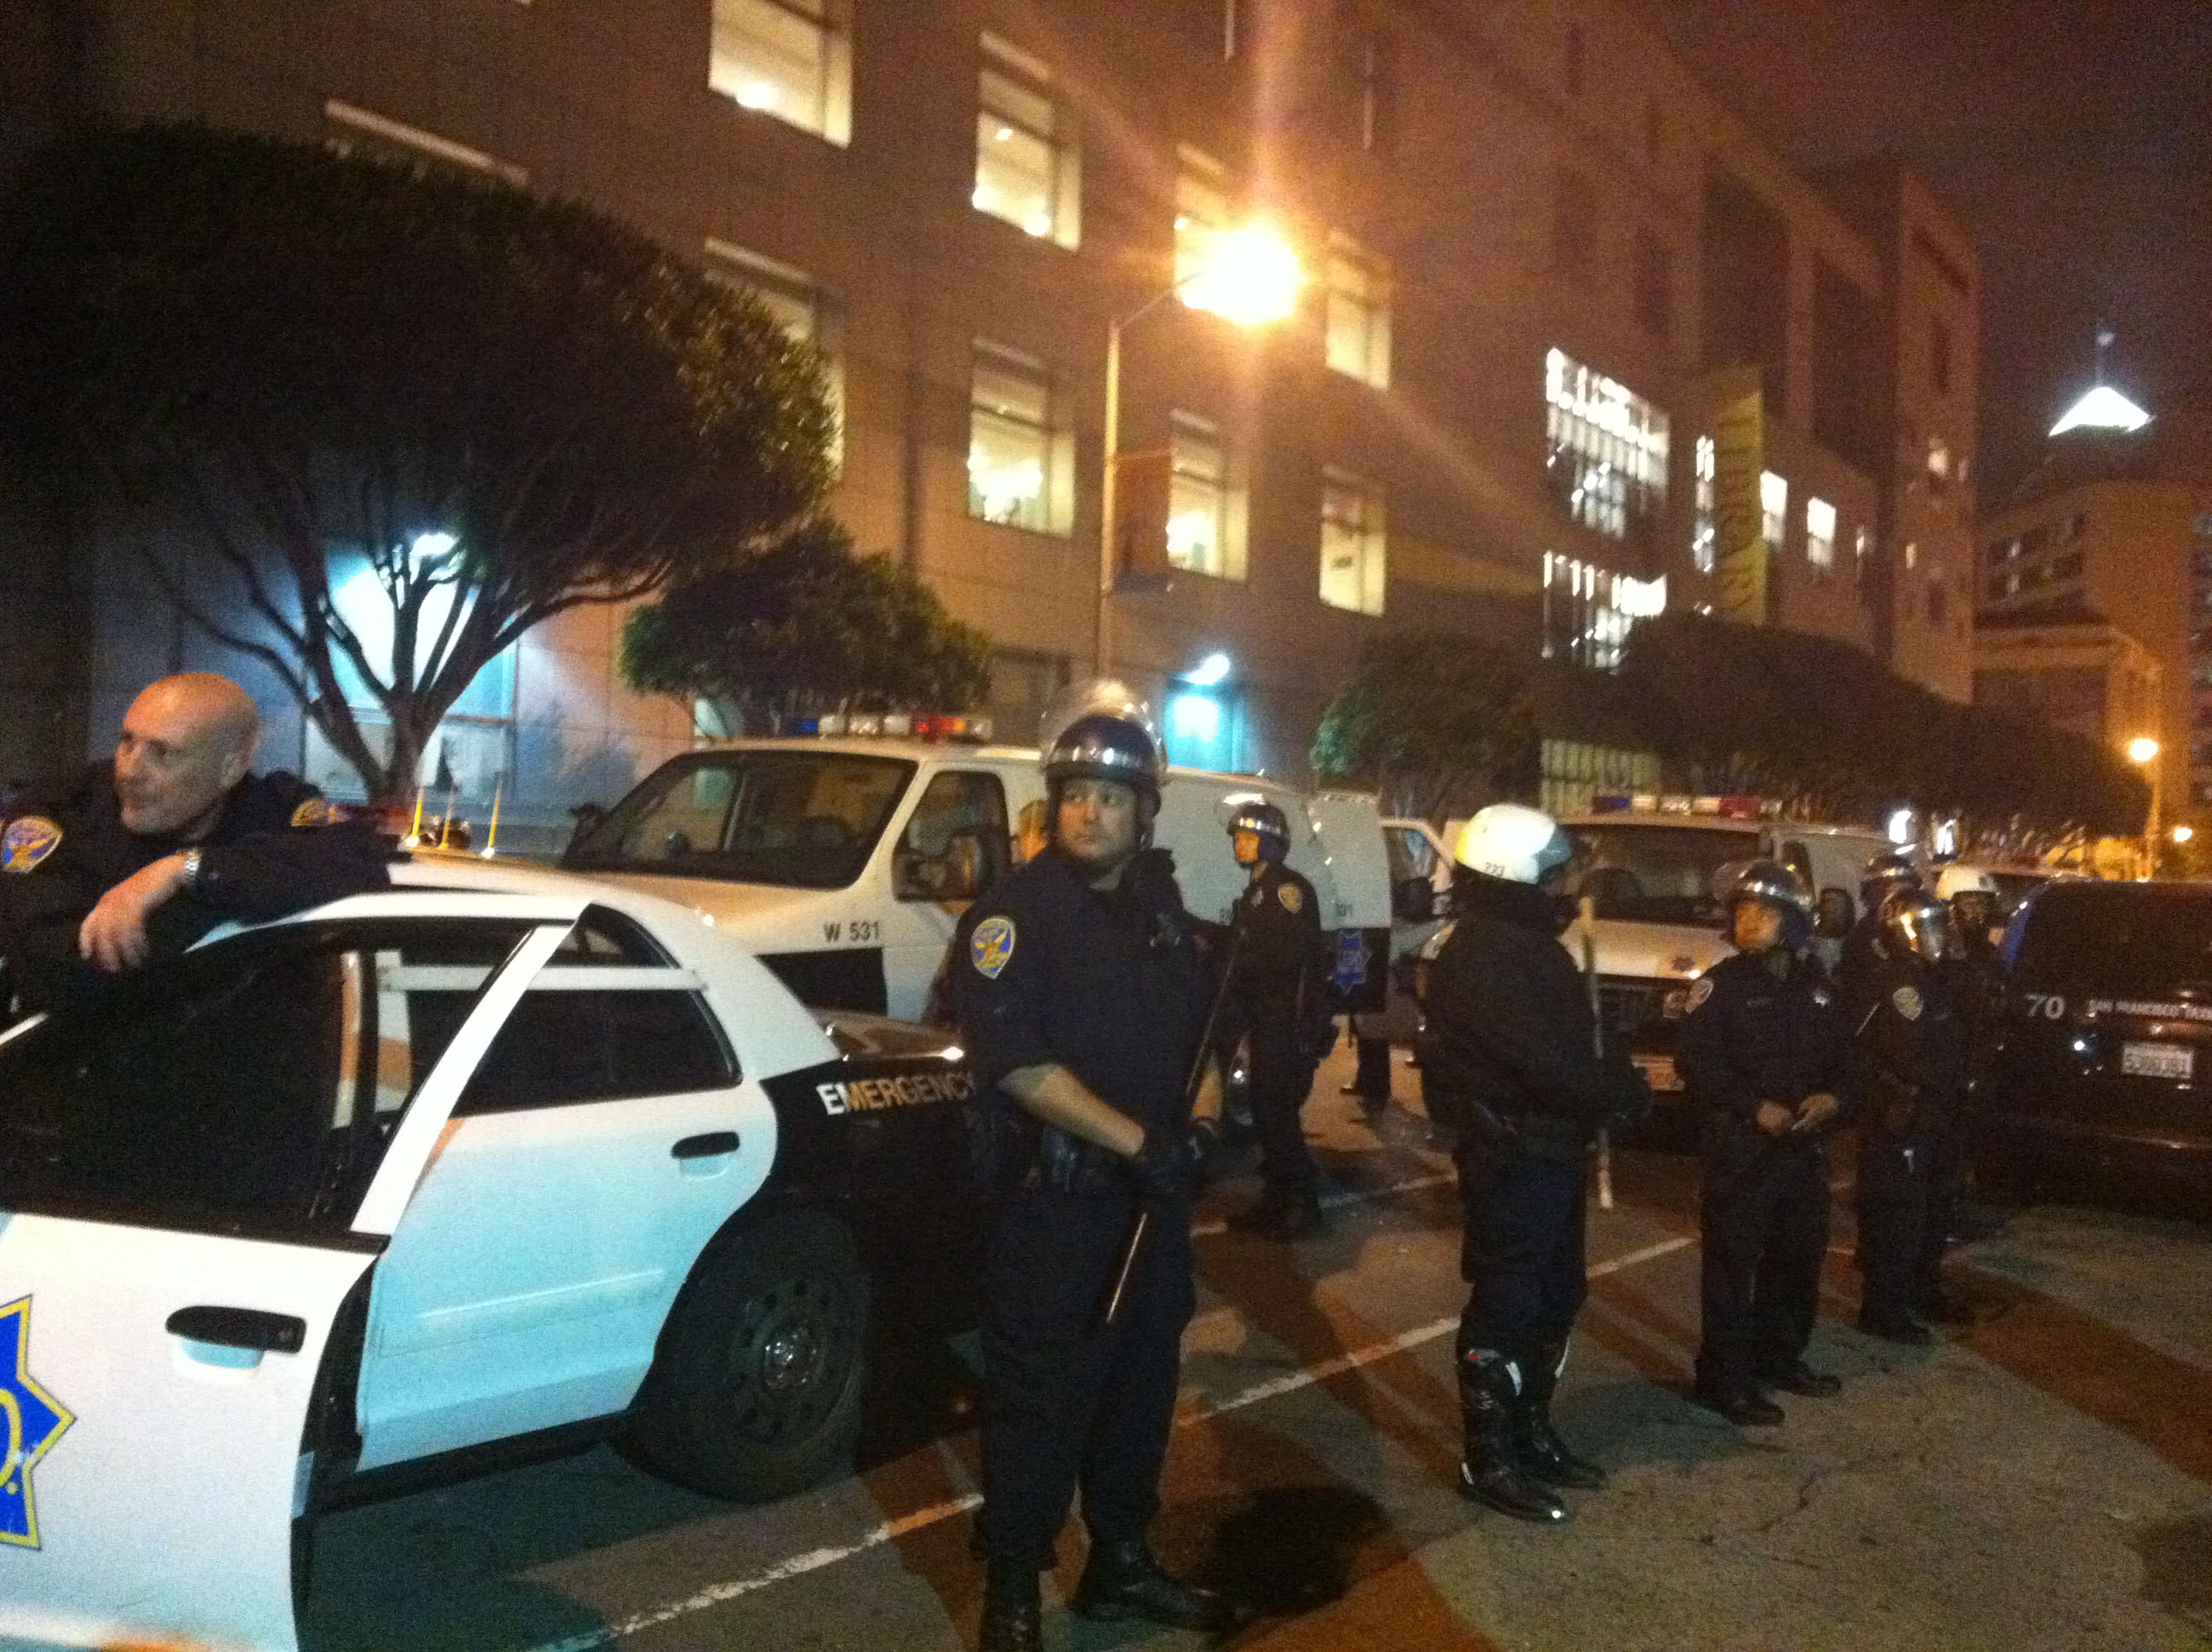 BART Protest Live – More Arrests Underway Outside the Library at Civic Center